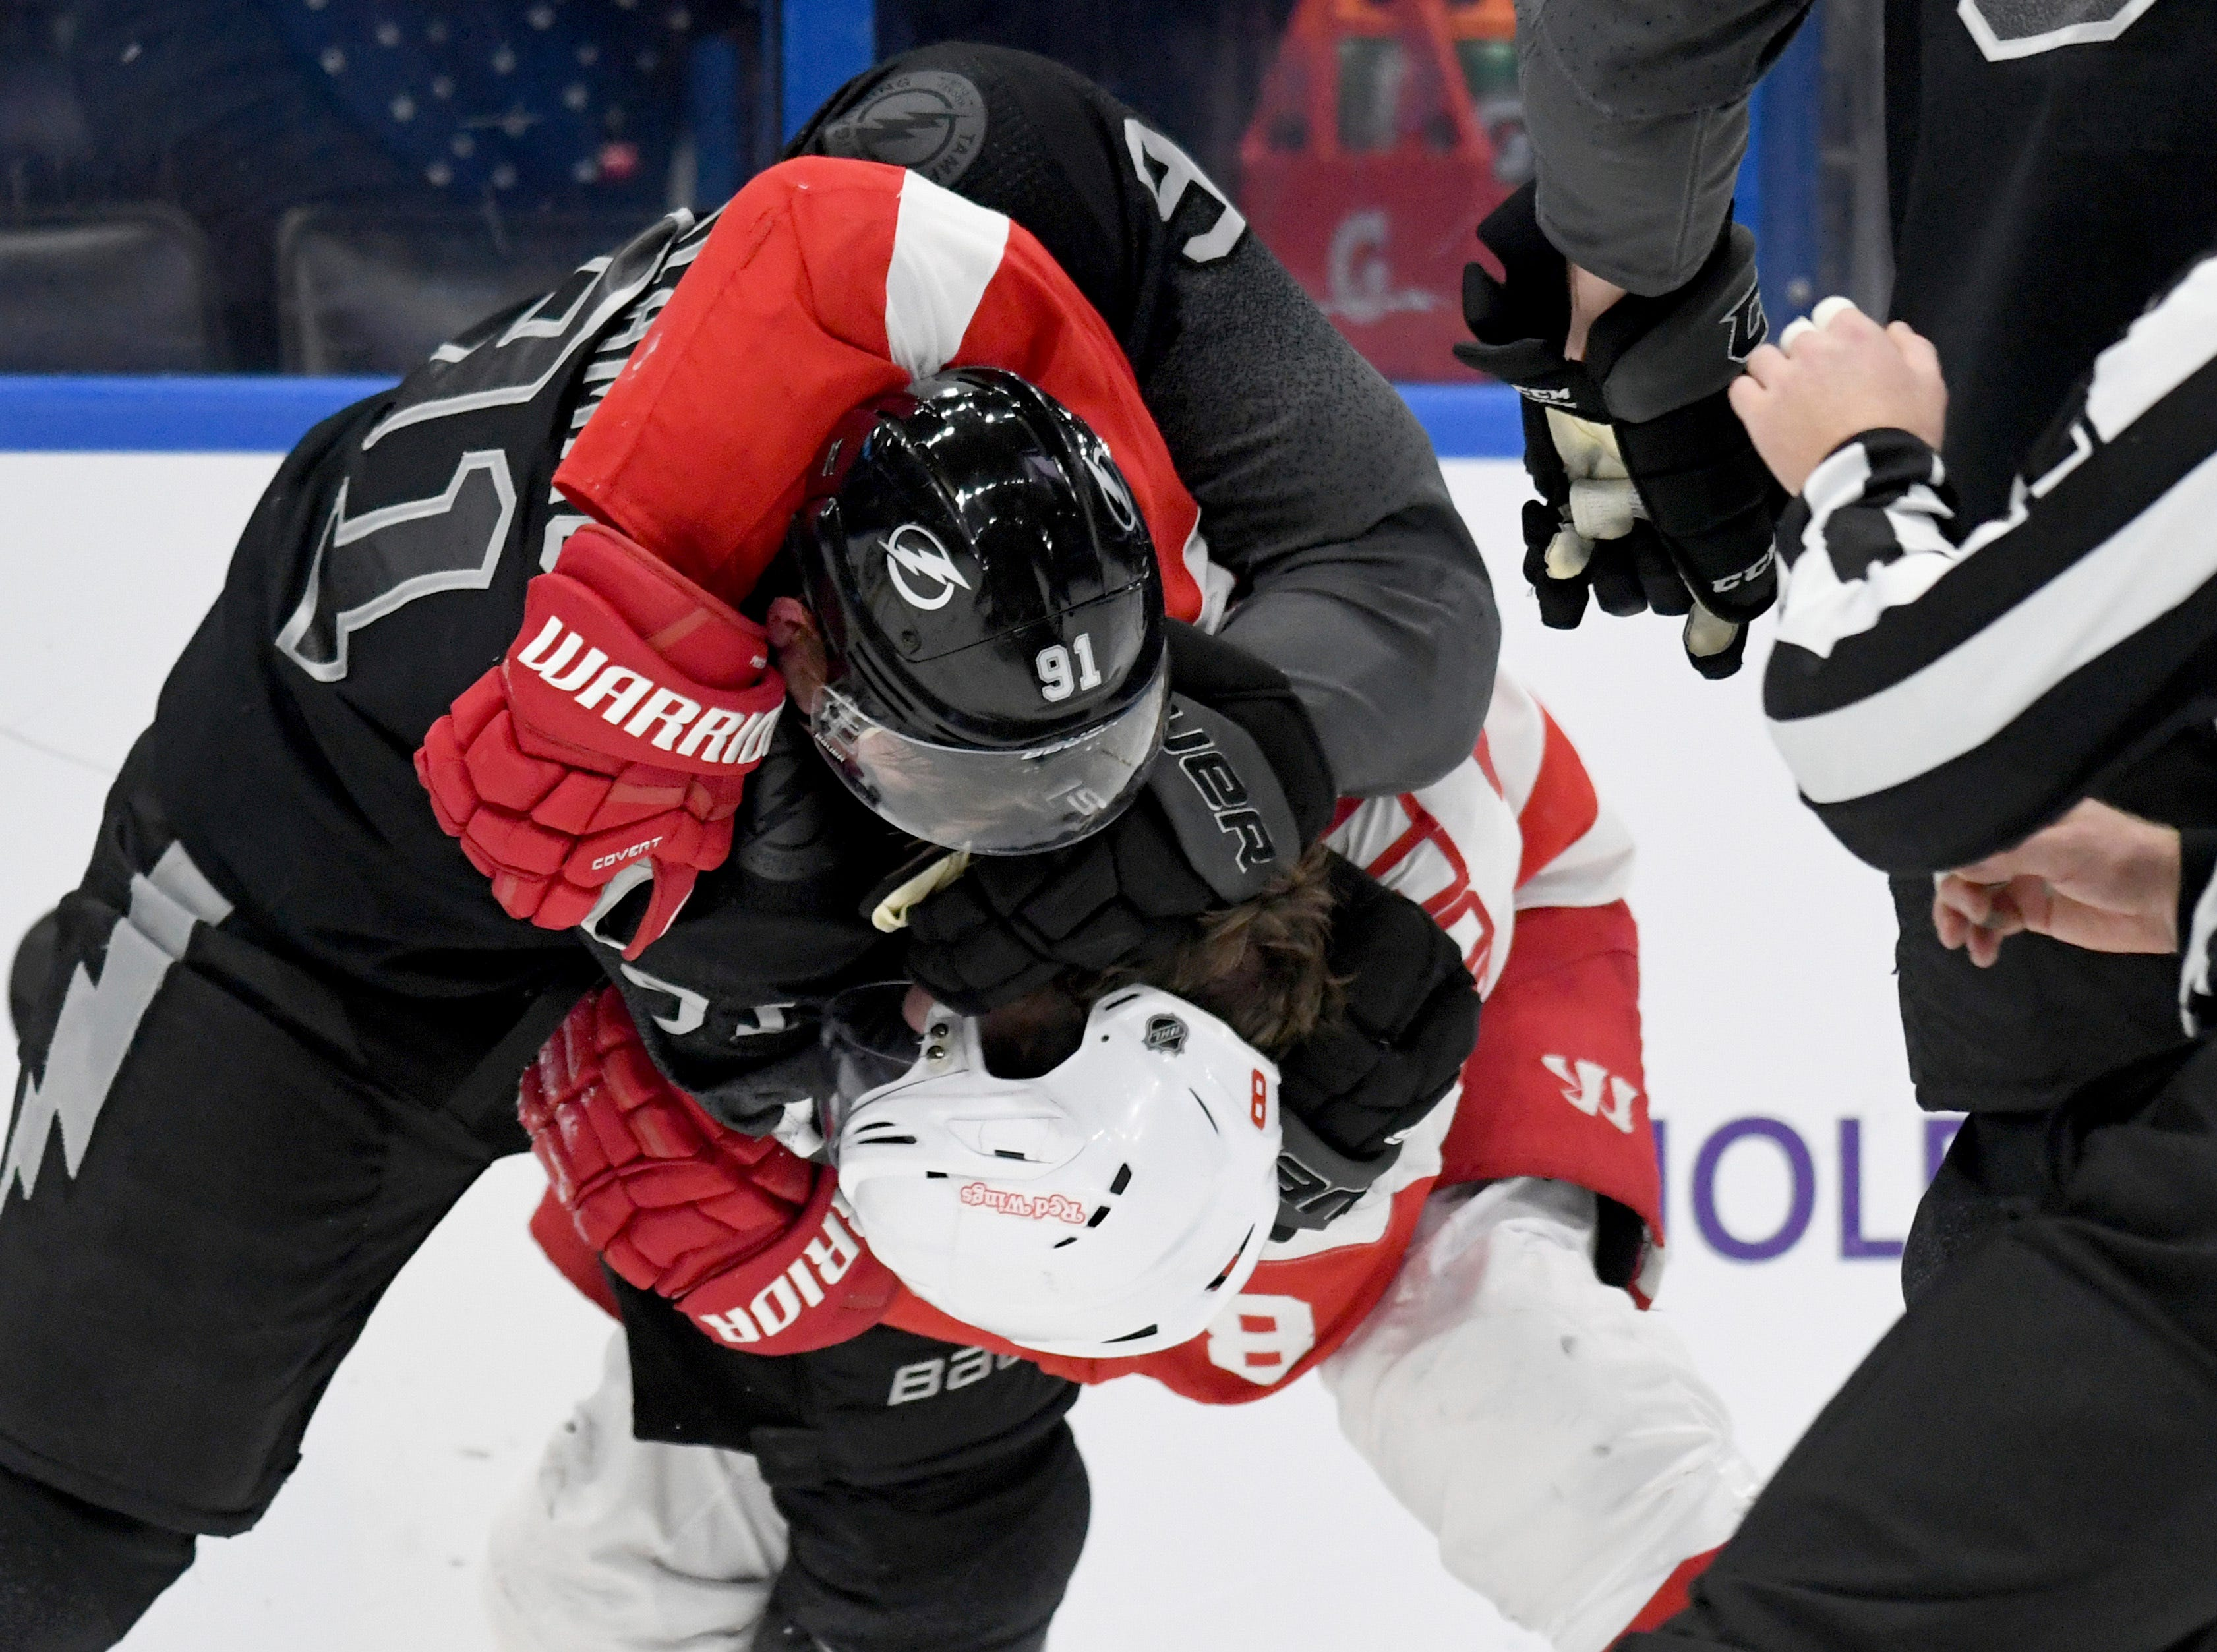 Tampa Bay Lightning center Steven Stamkos (91) and Detroit Red Wings left wing Justin Abdelkader (8) fight during the first period of an NHL hockey game Saturday, March 9, 2019, in Tampa, Fla. (AP Photo/Jason Behnken)